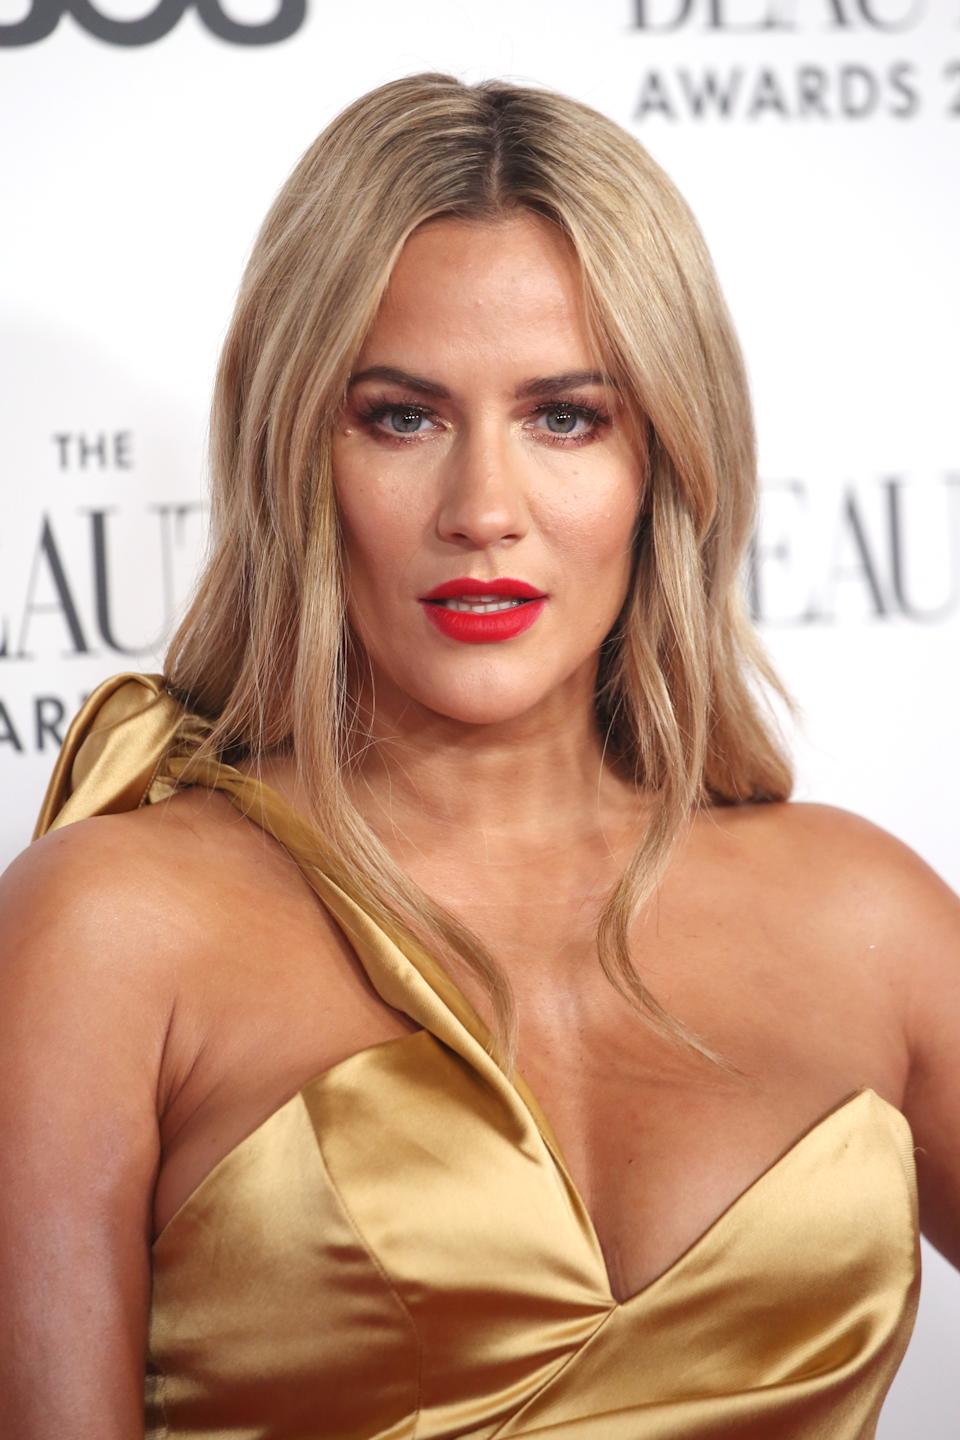 LONDON, ENGLAND - NOVEMBER 25: Caroline Flack attends The Beauty Awards 2019 on November 25, 2019 in London, England. (Photo by Lia Toby/Getty Images)